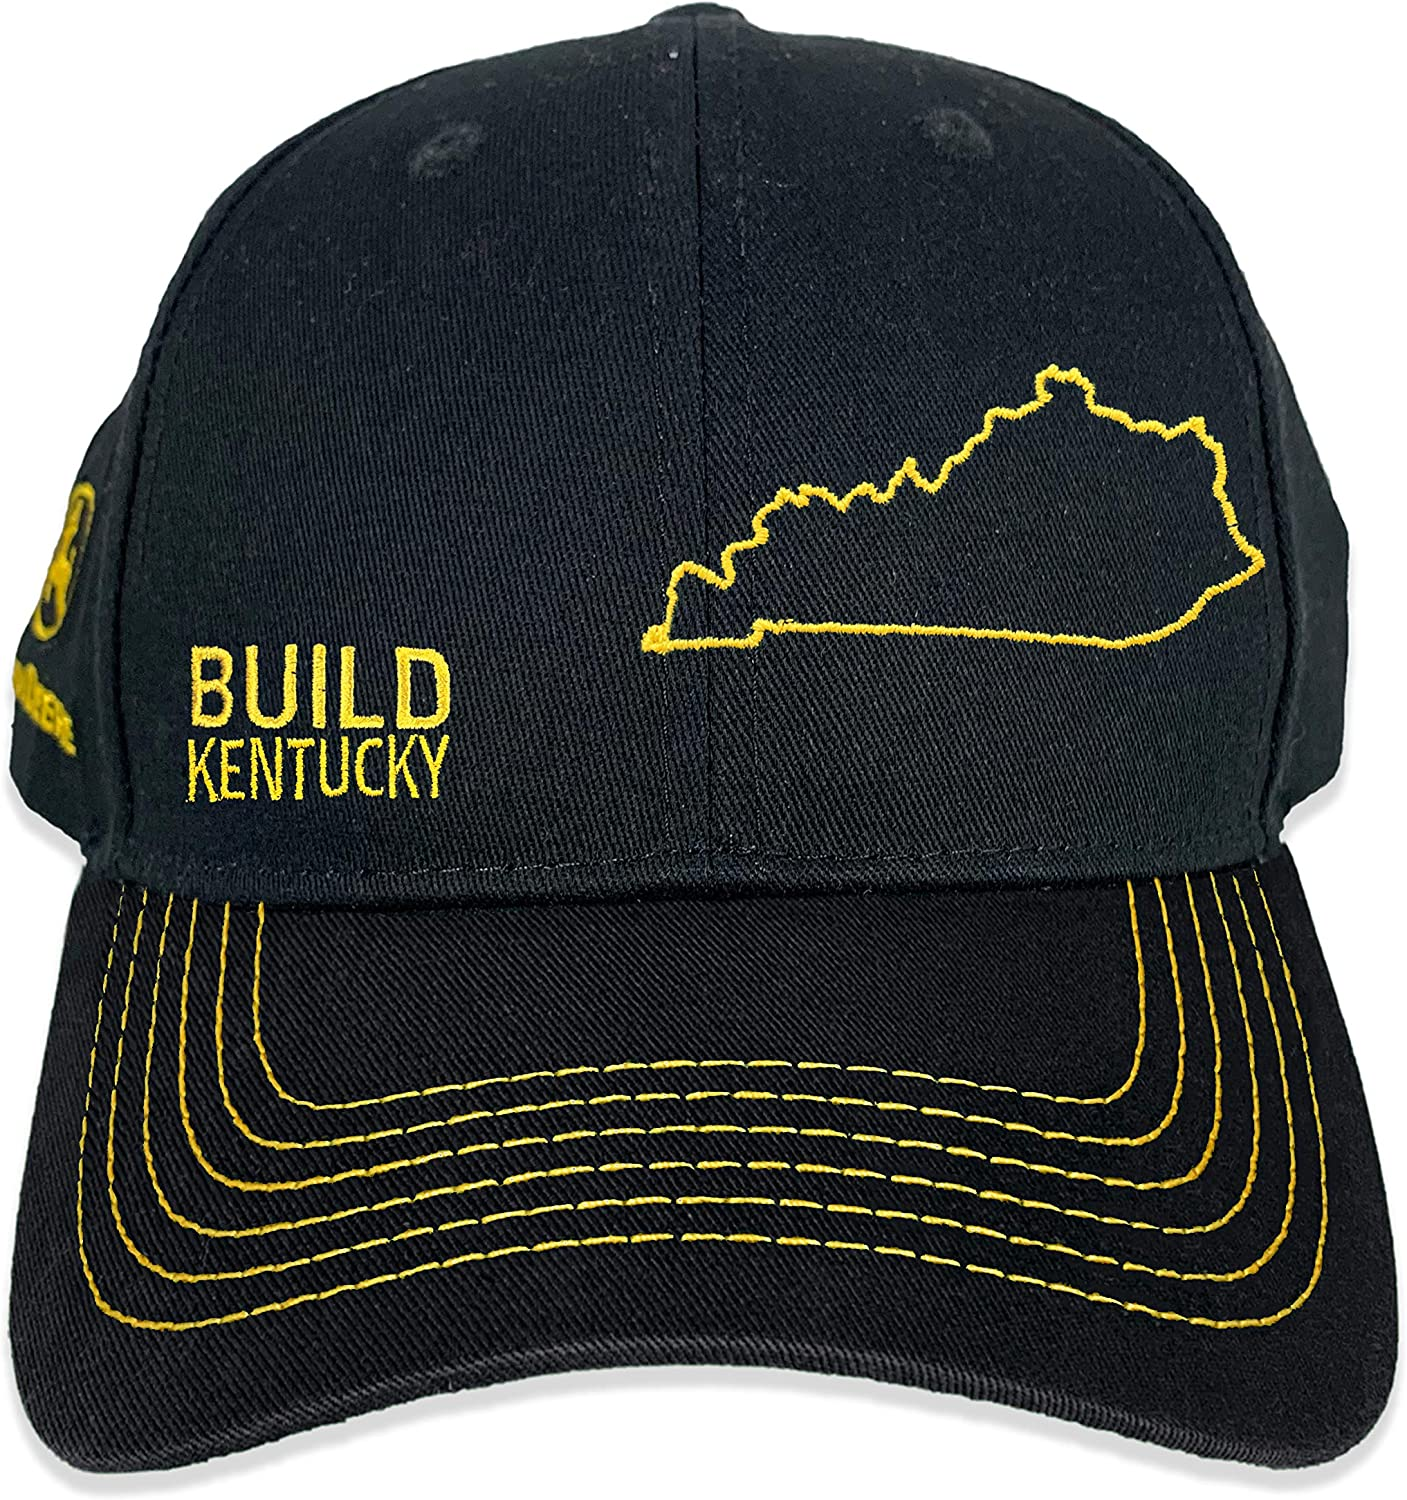 John Deere Build State Pride and Twill Hat-Black Dallas Mall Sale special price Grey Full